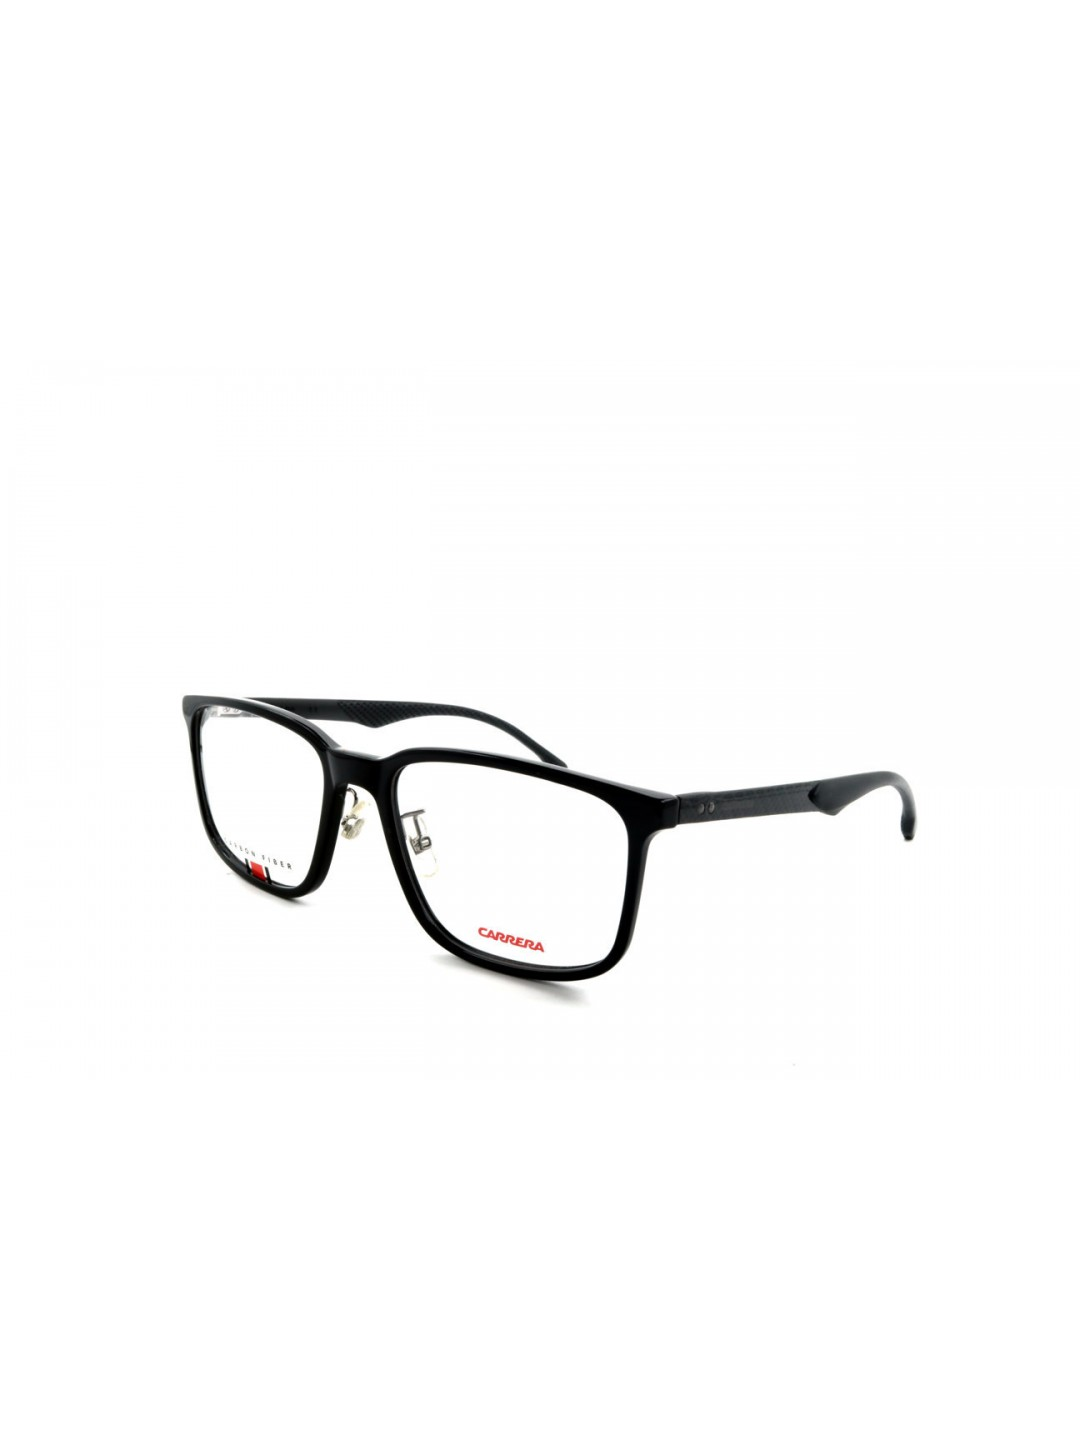 Carrera 8840/G 807 Black Trendy Eye Frame